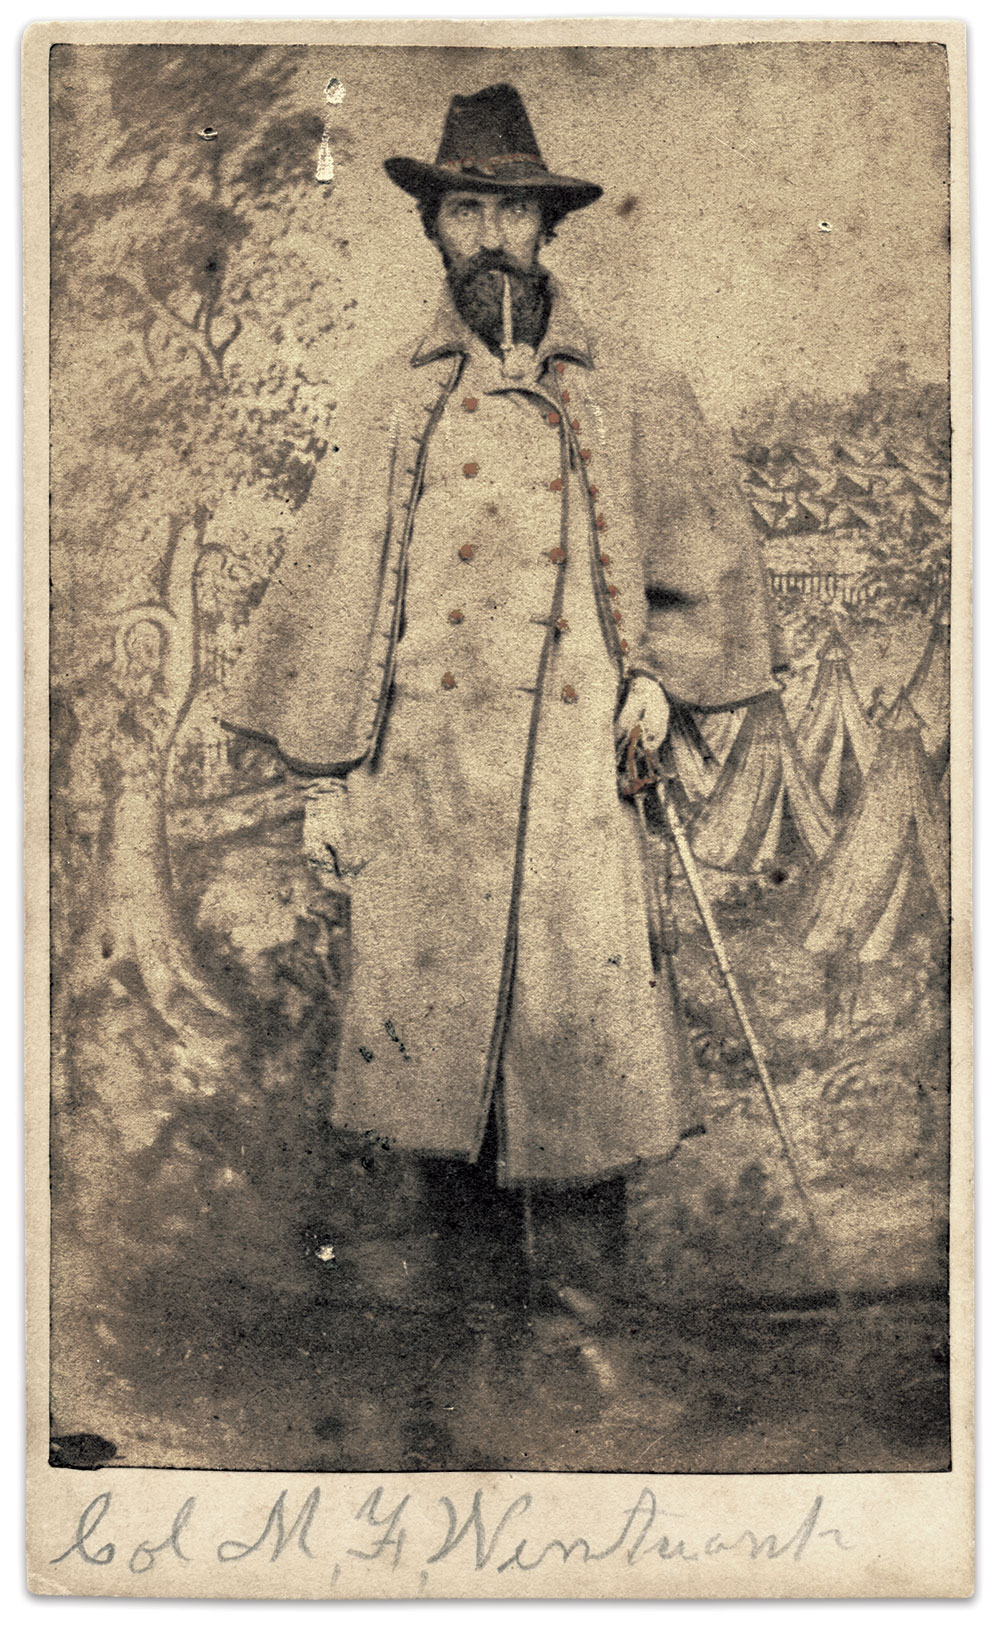 Col. Mark F. Wentworth, above, reconstructed a list of 299 men from the 27th Maine Infantry who received the Medal of Honor for not leaving the army.Carte de visite by Davis Brothers of Portsmouth, Maine. Author's Collection.